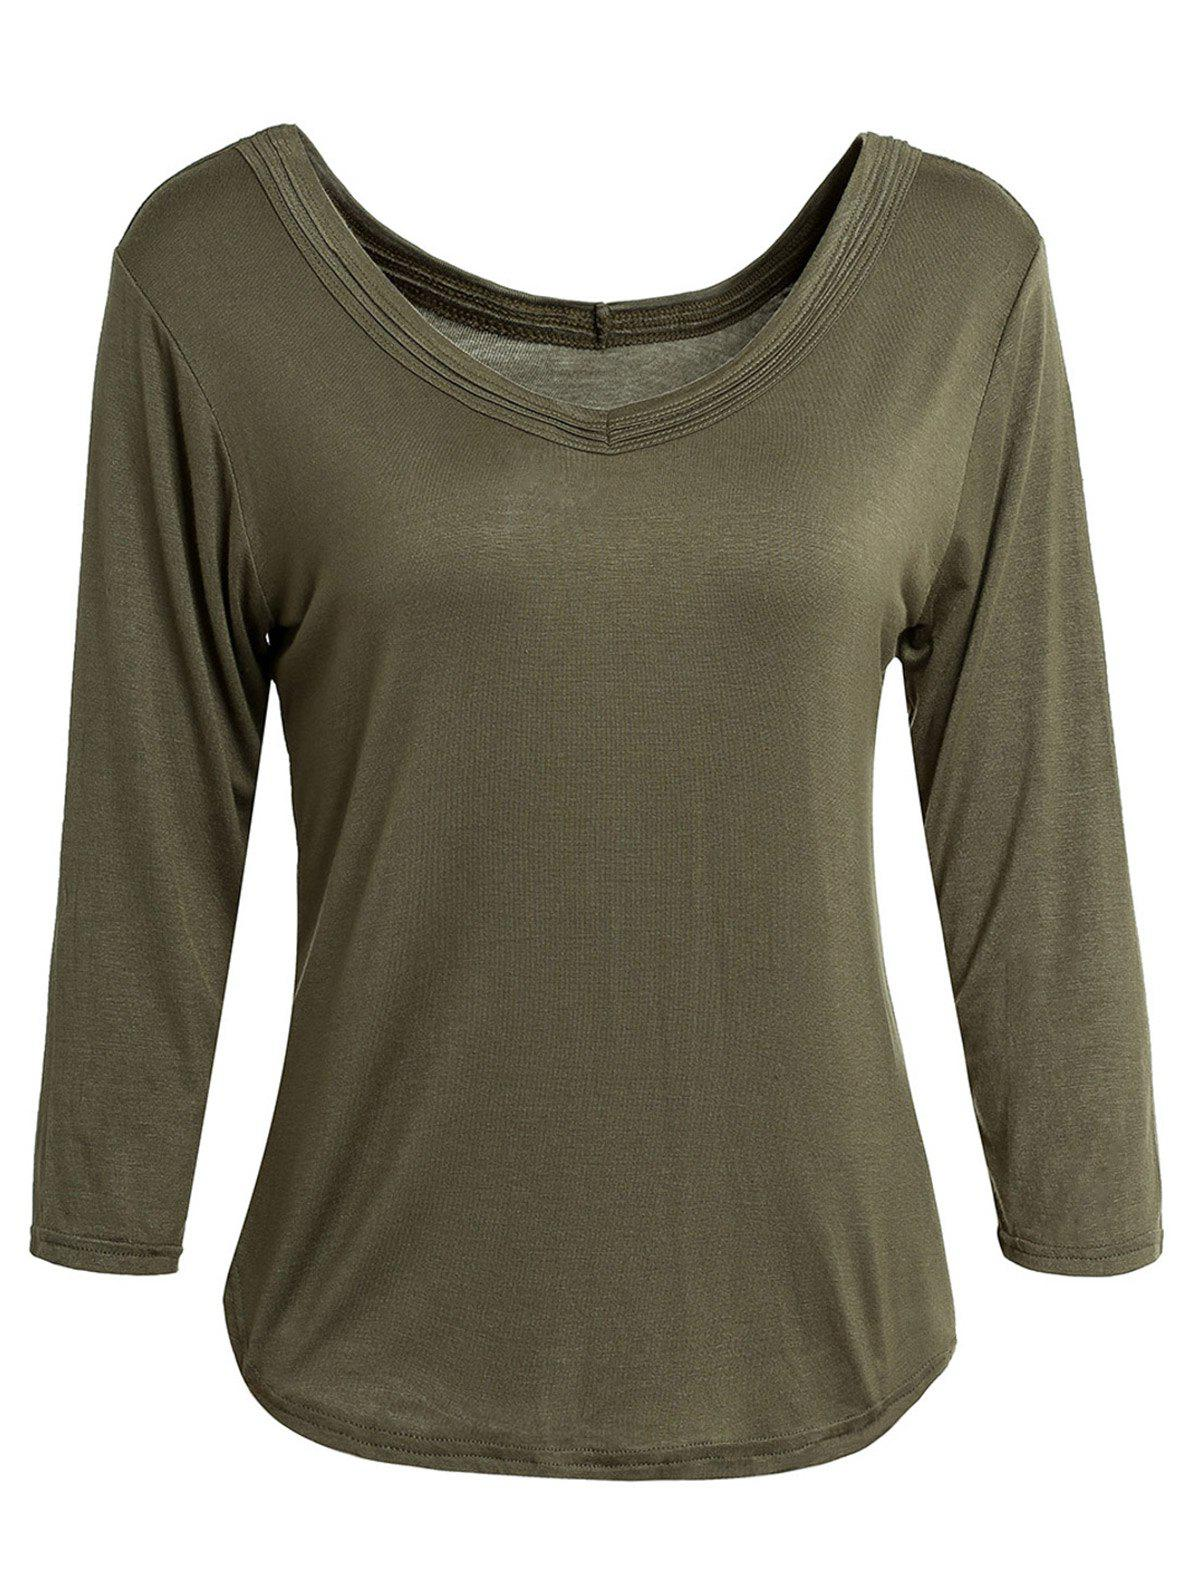 Simple V-Neck Solid Color 3/4 Sleeve Women's T-Shirt - ARMY GREEN M